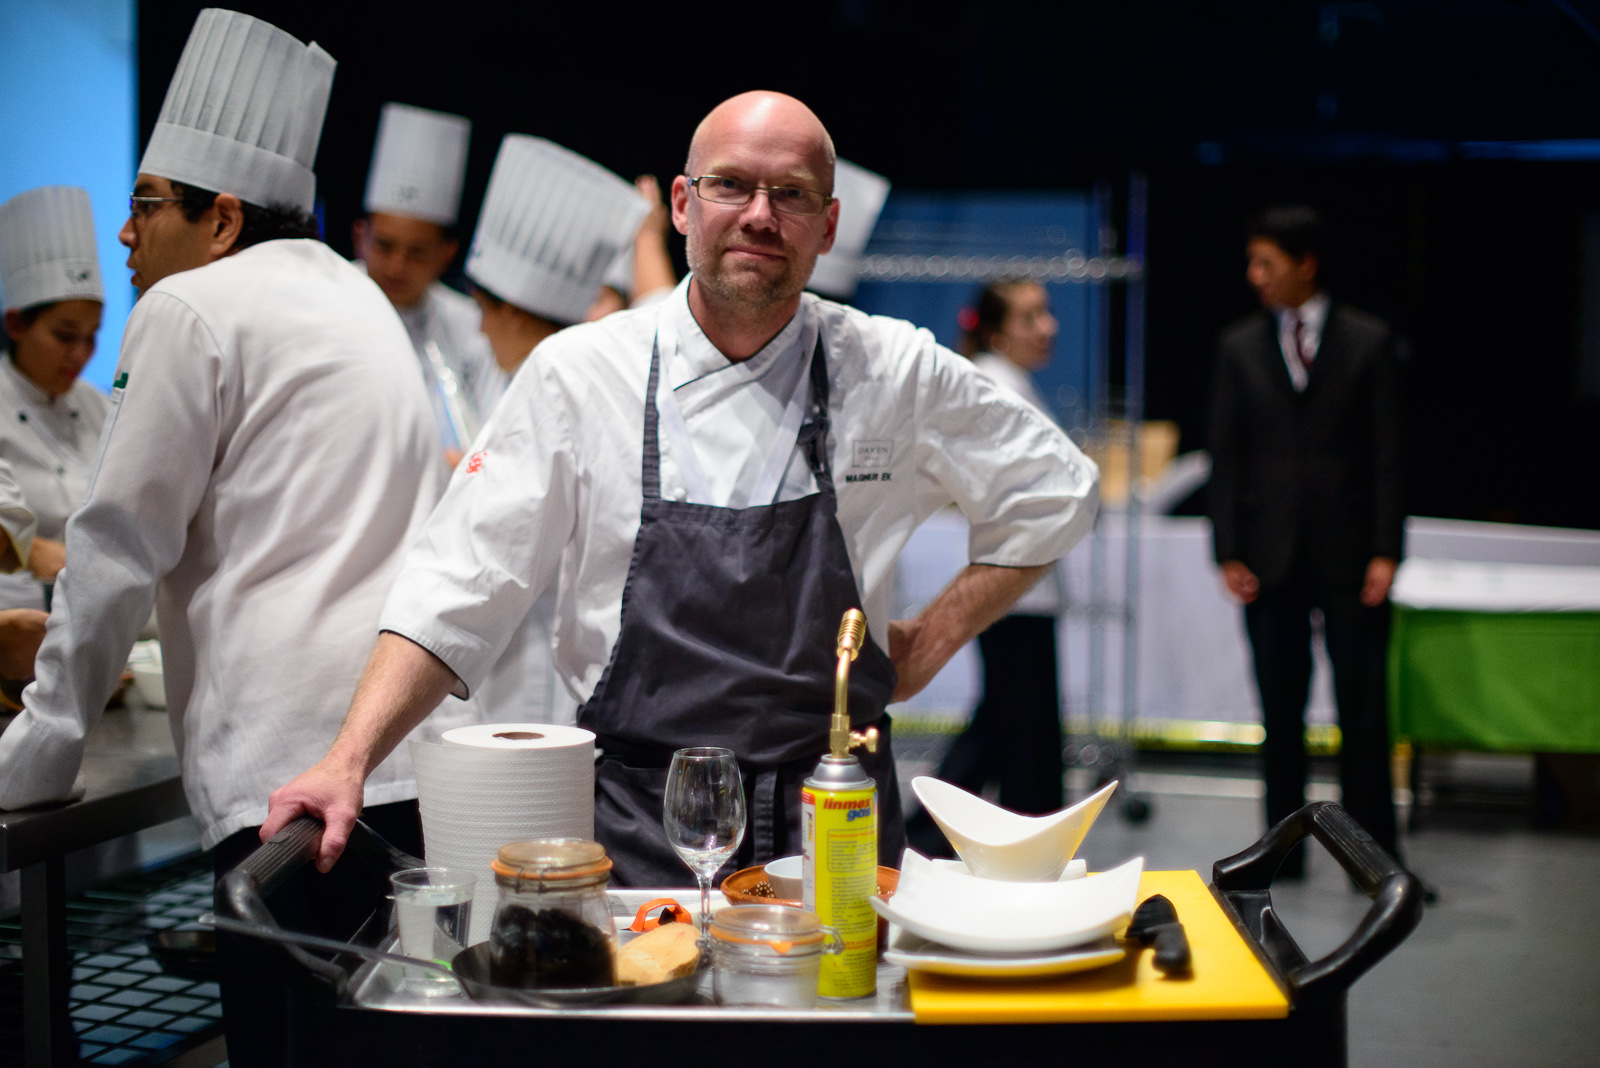 Chef Magnus Ek before his demonstration